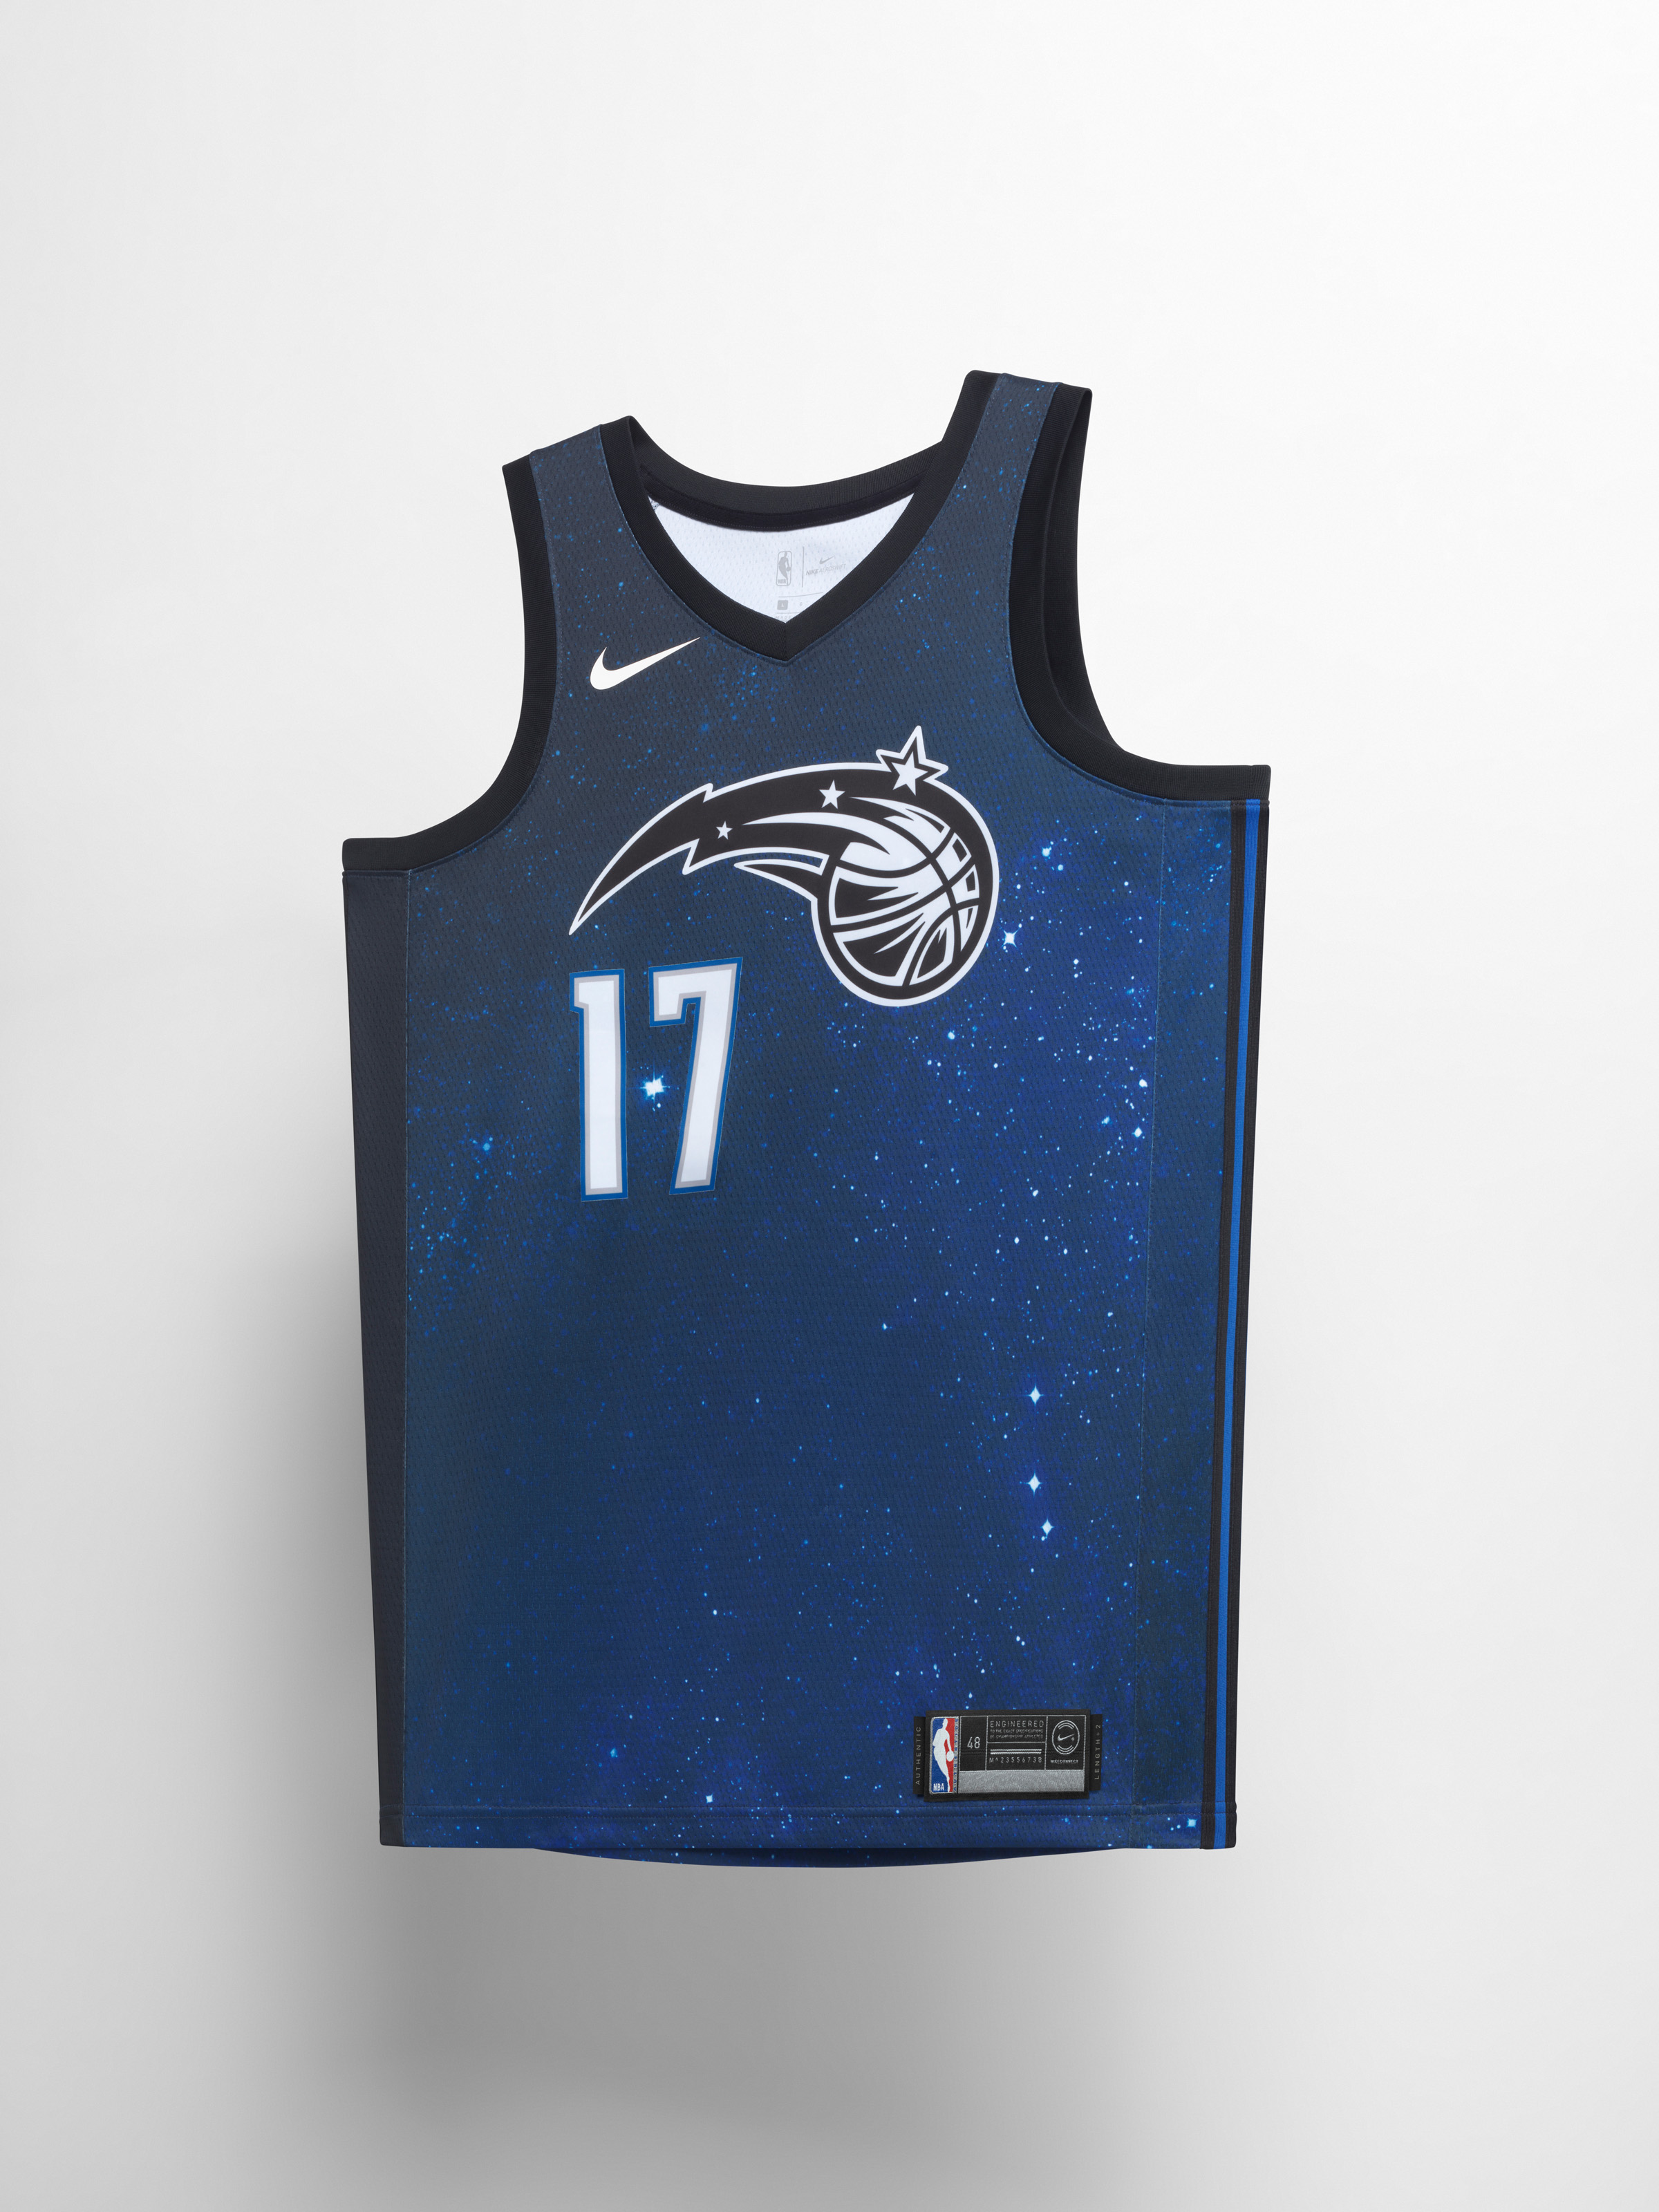 brand new a556e a0fed Nike unveils City Edition uniforms for 26 NBA teams